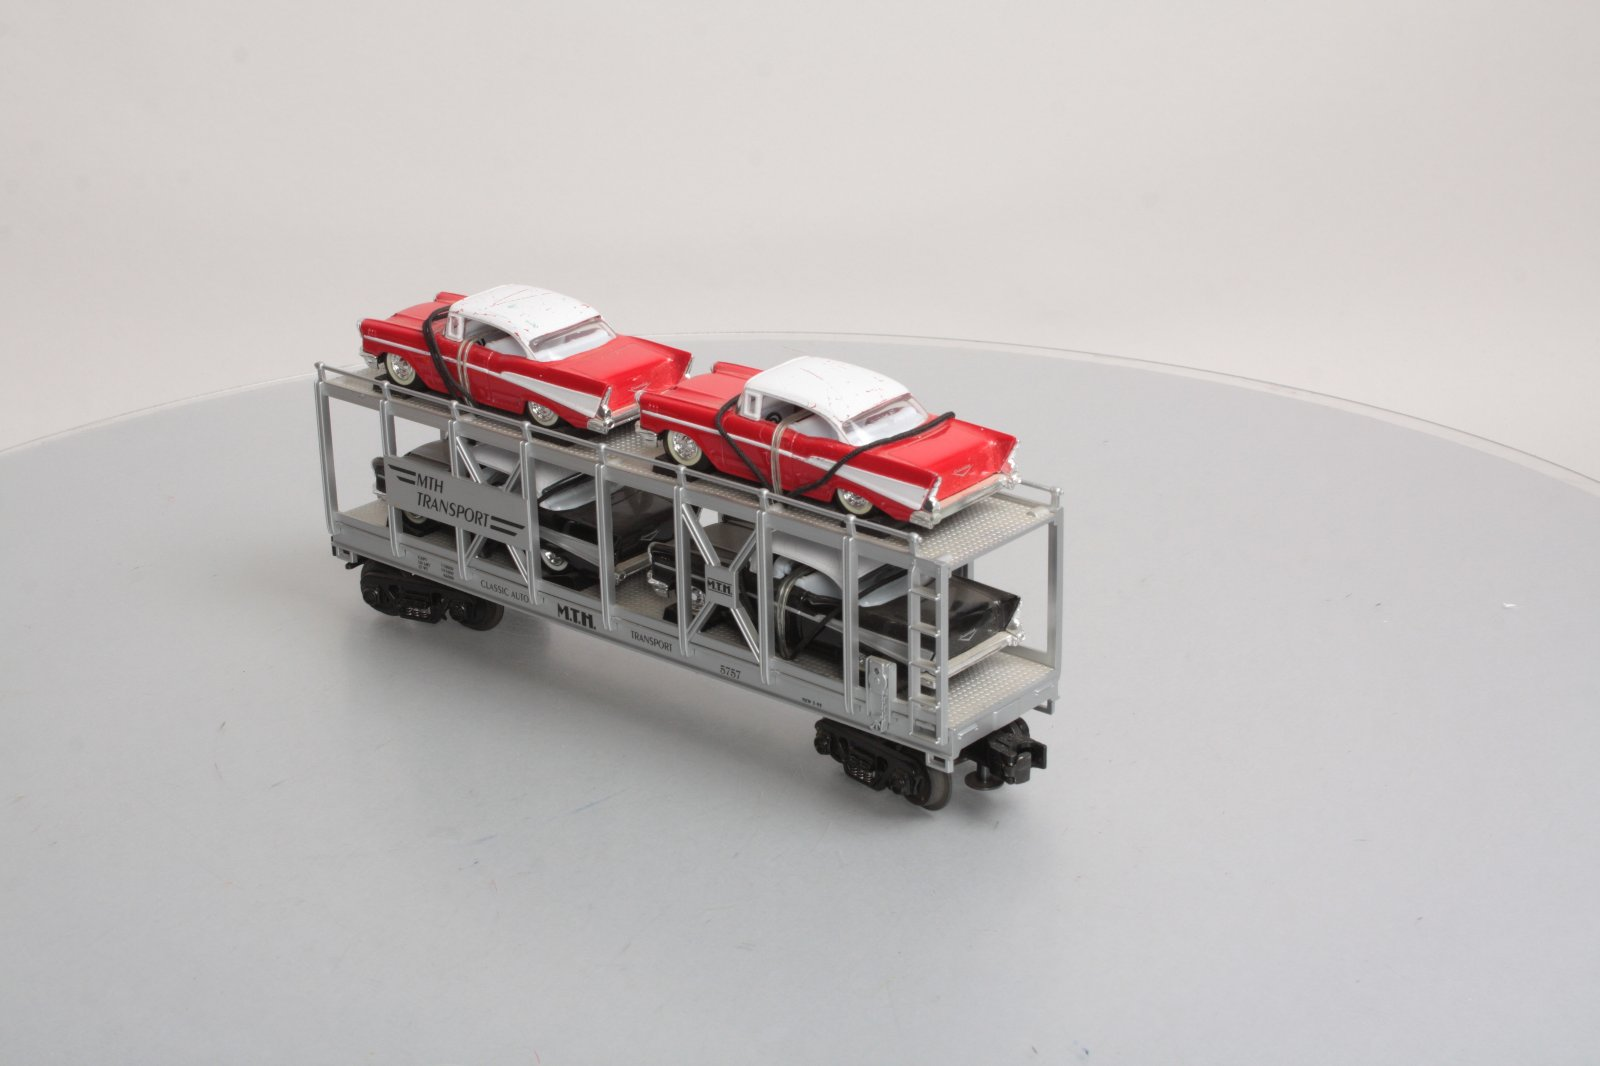 hight resolution of mth 30 7656 mth auto carrier w 4 die cast 1957 chevy automobiles